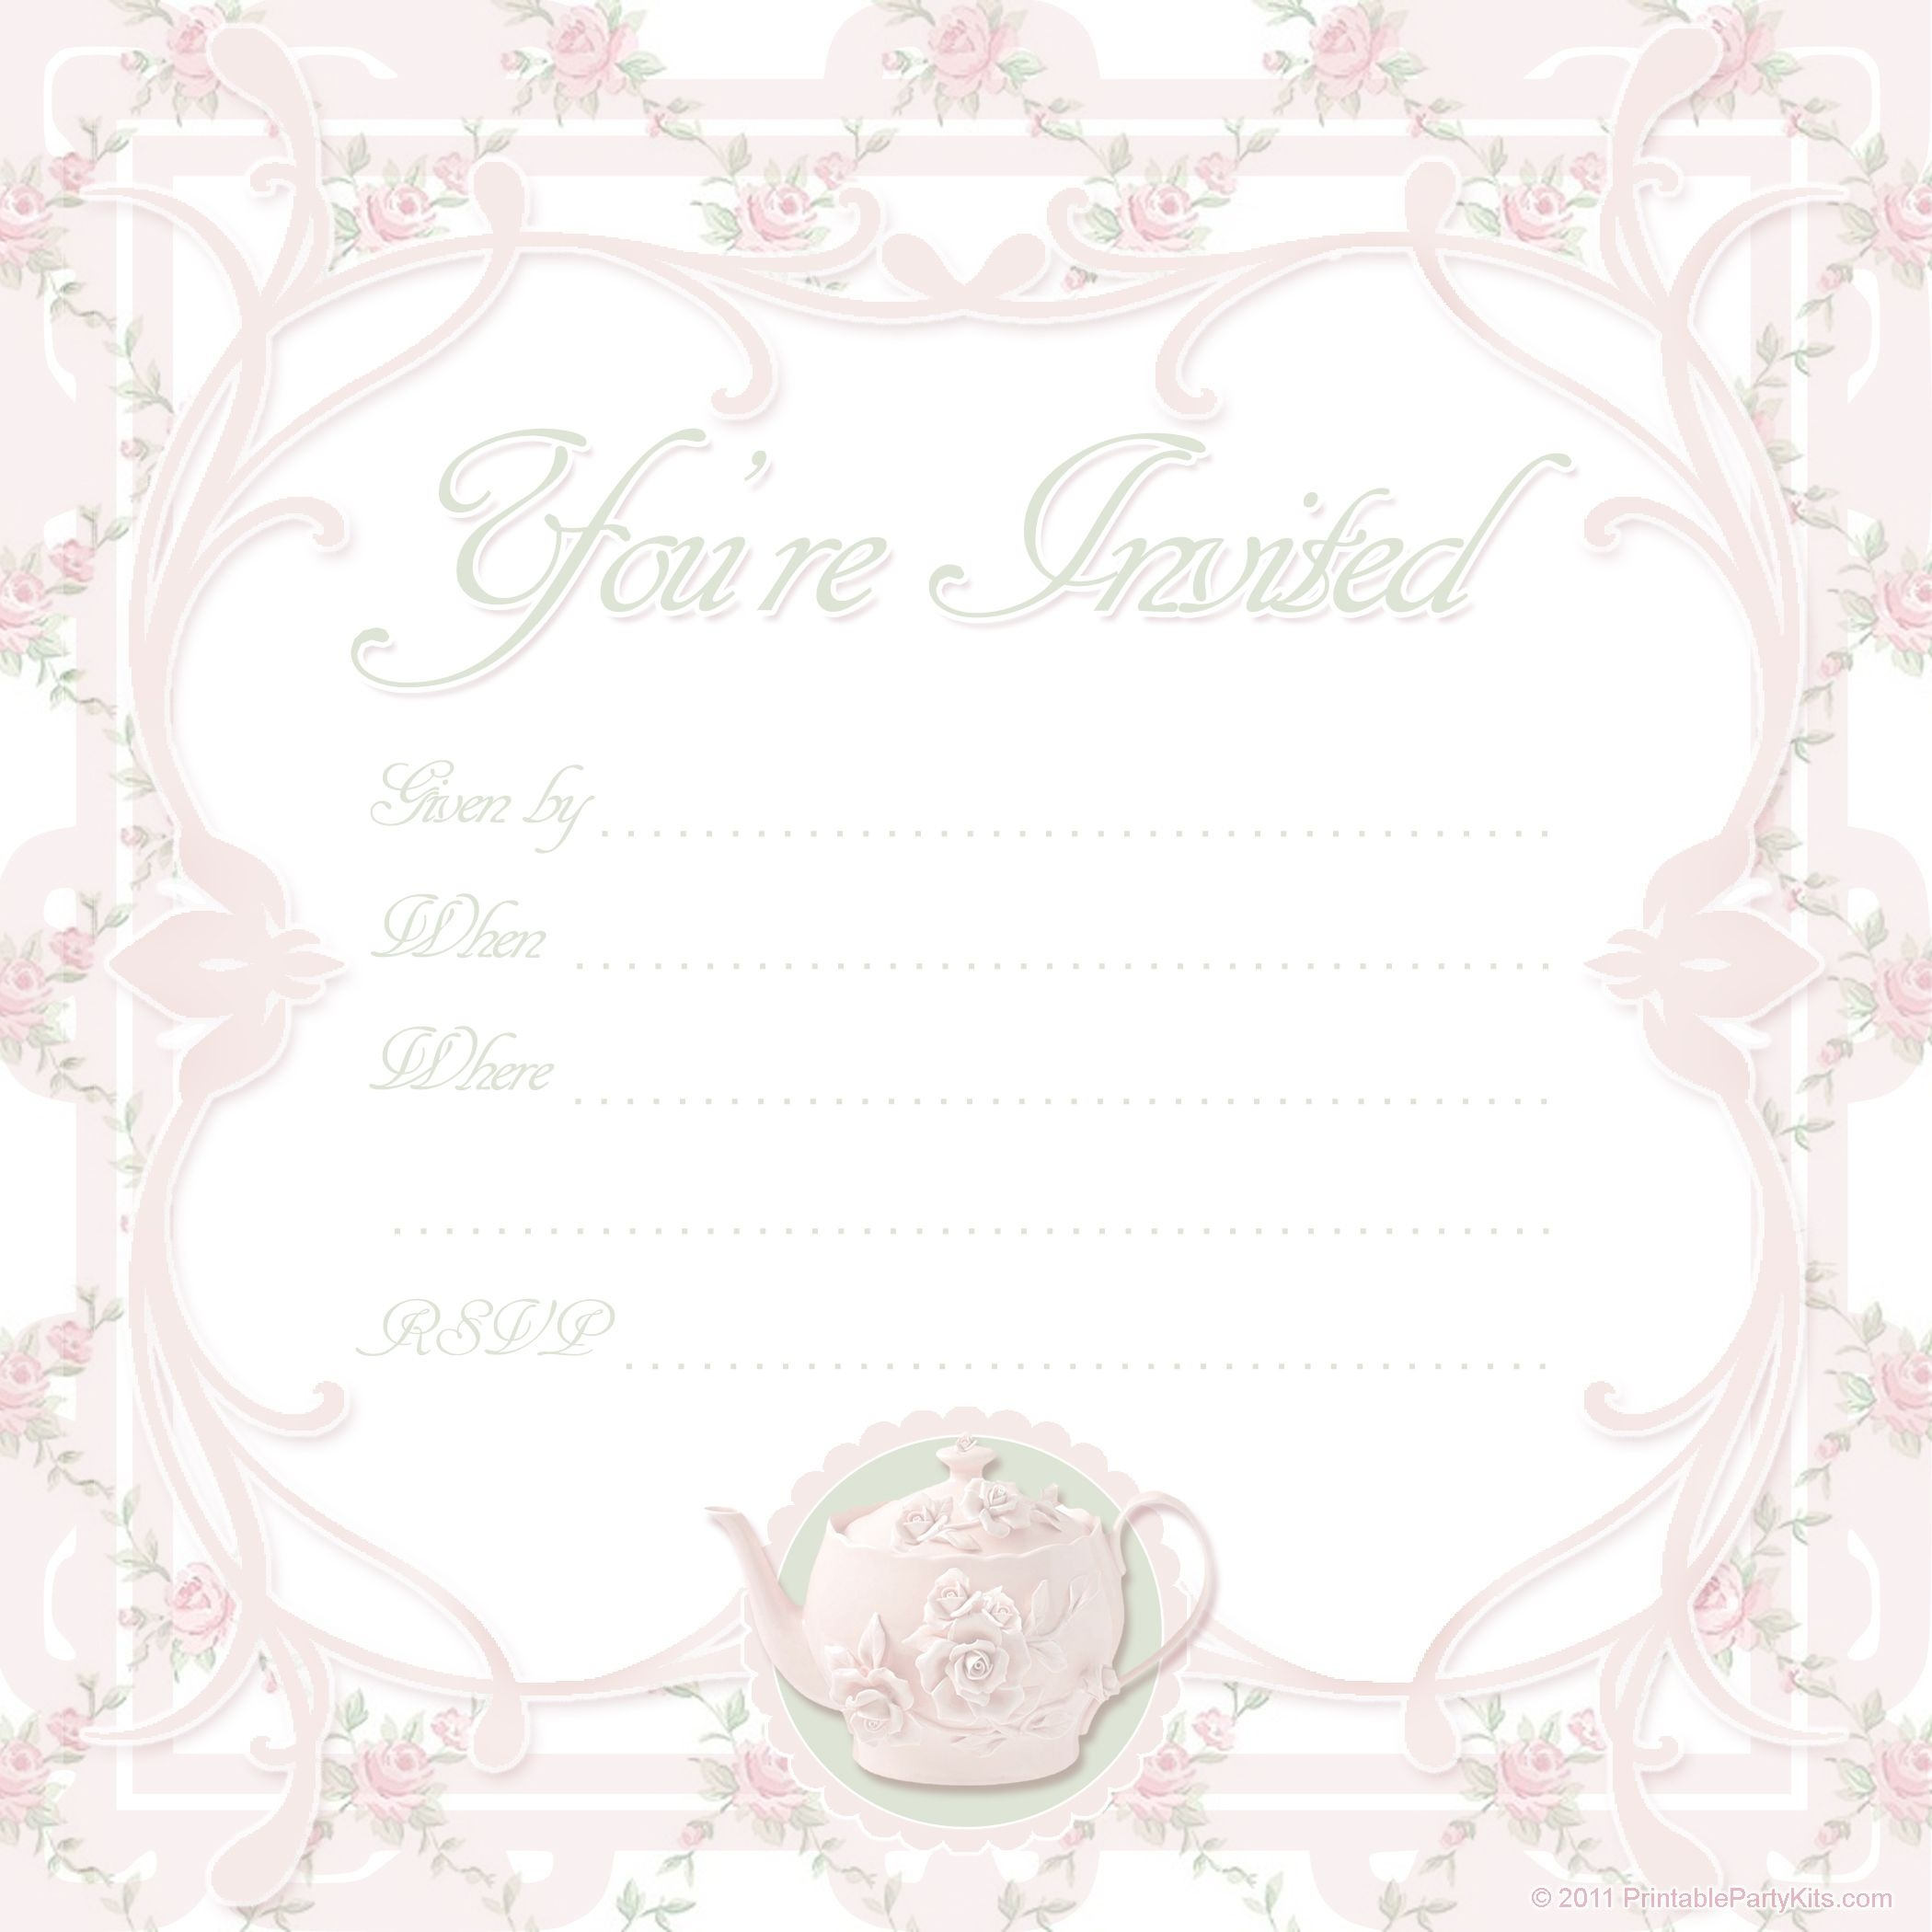 Vintage Tea Party Invitations | Free Printable Tea Party Invite - Free Printable Kitchen Tea Invitation Templates